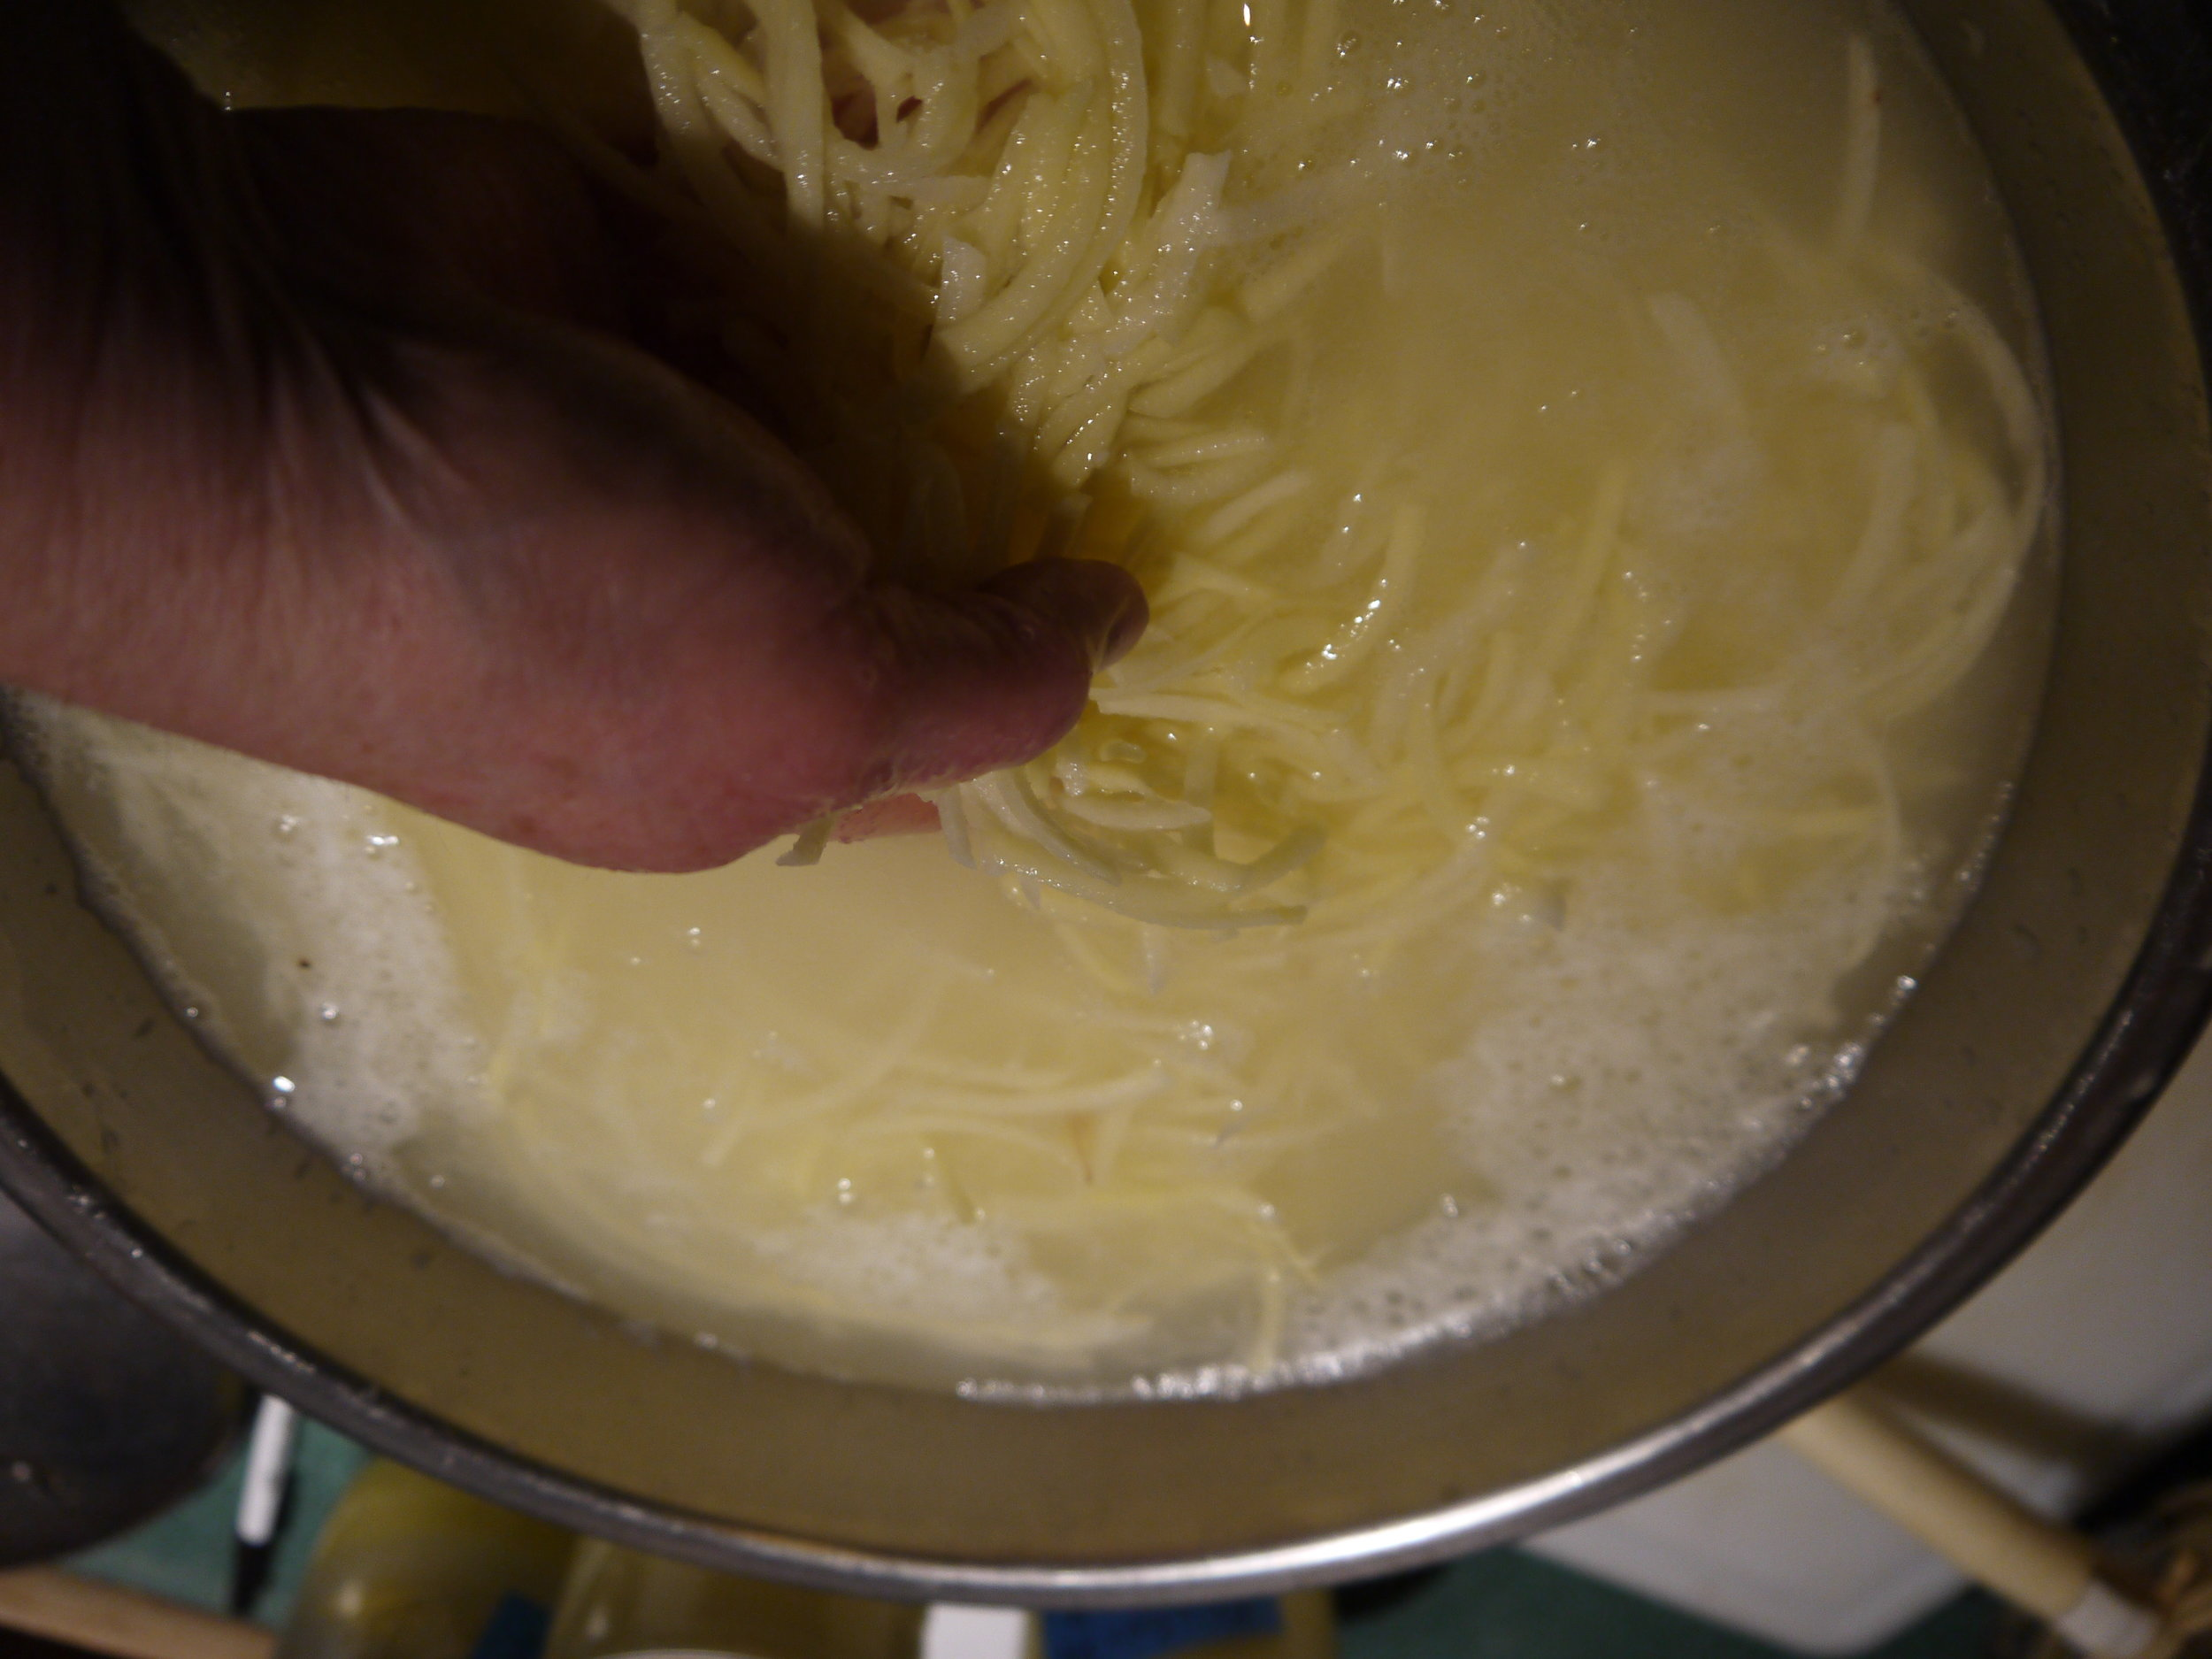 Swish the potatoes in a bowl of acidulated water and drain well.